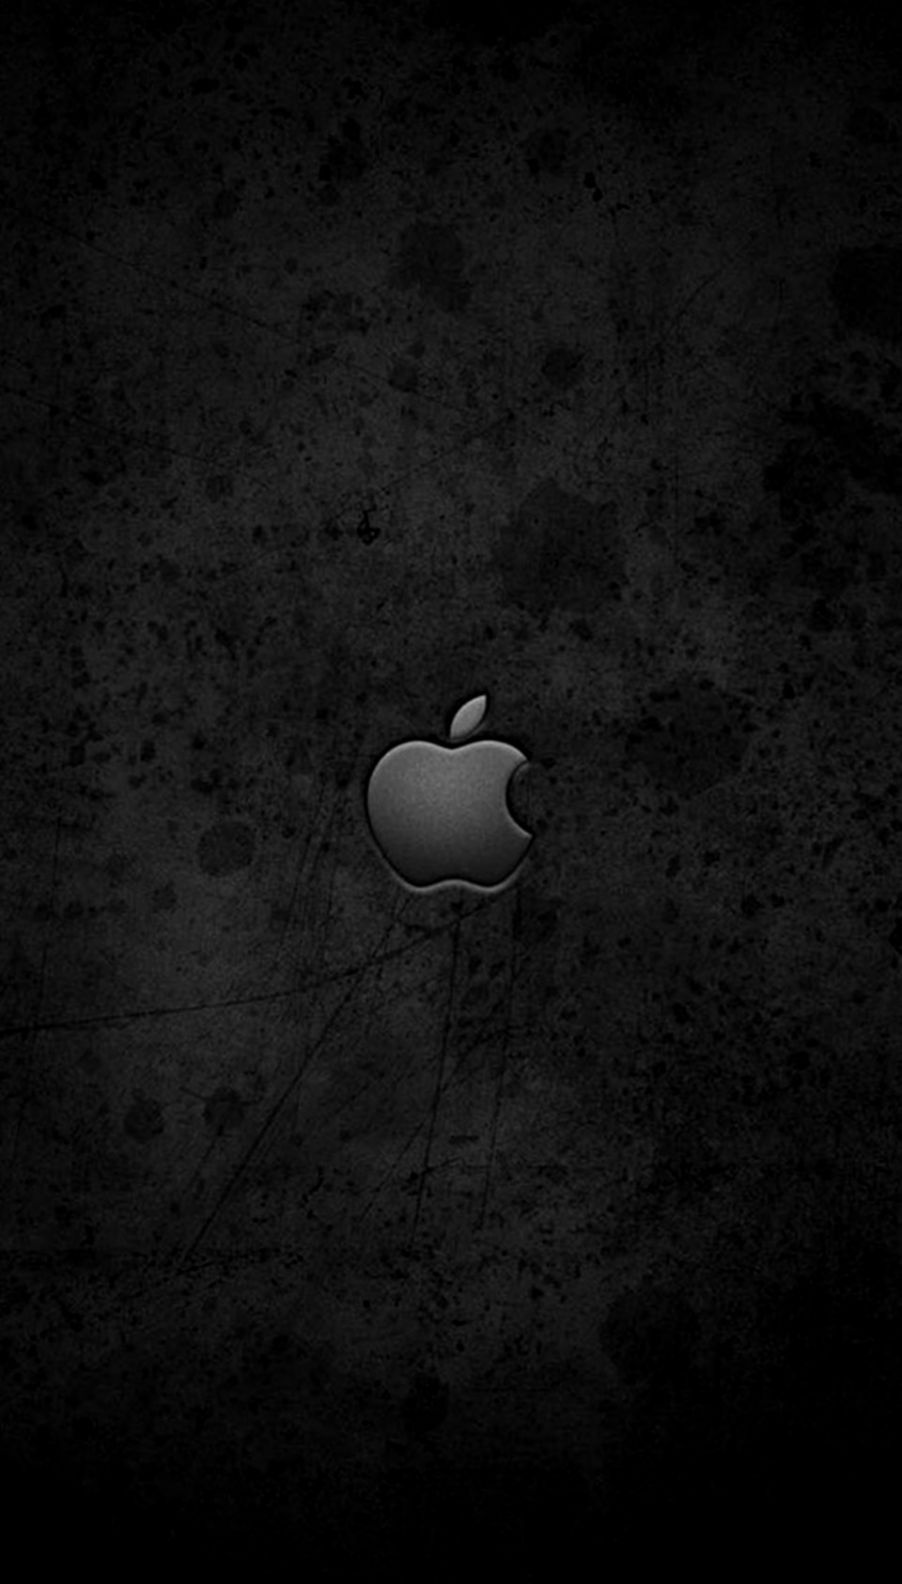 Black Apple Logo Wallpaper For Iphone  Photos Of Iphone Wallpaper